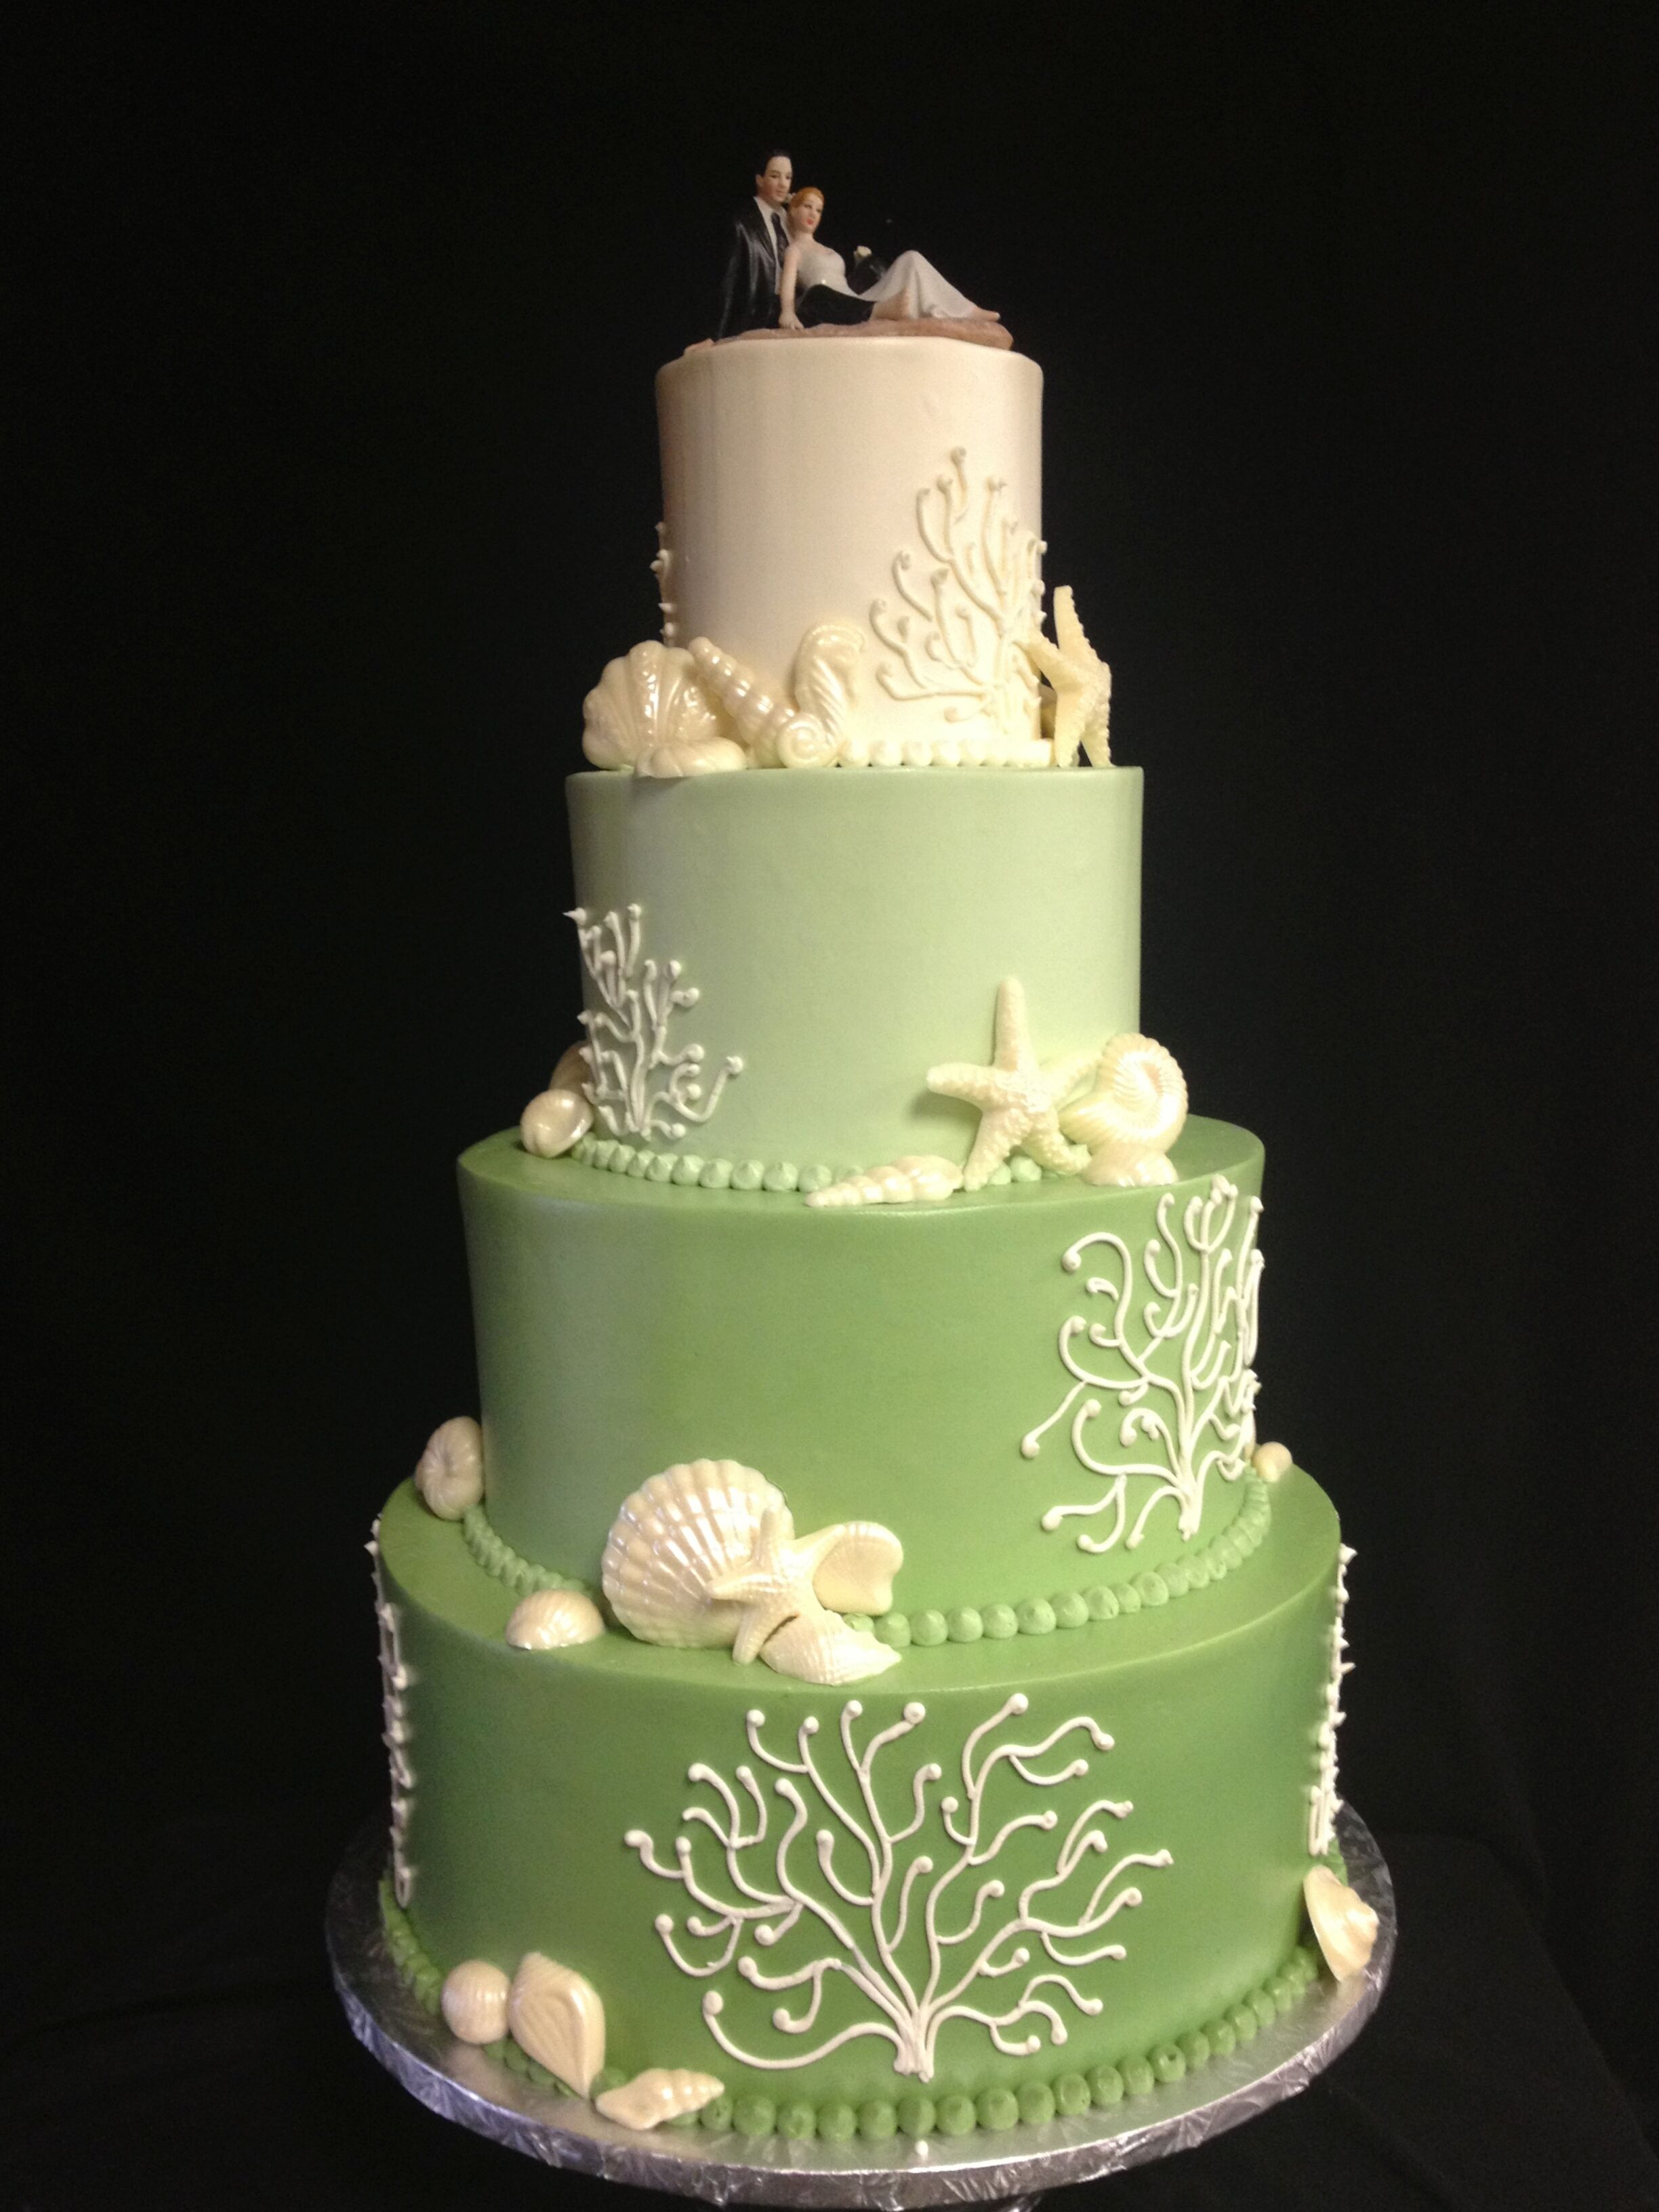 Wedding Cake Bakeries in Cape May, NJ - The Knot